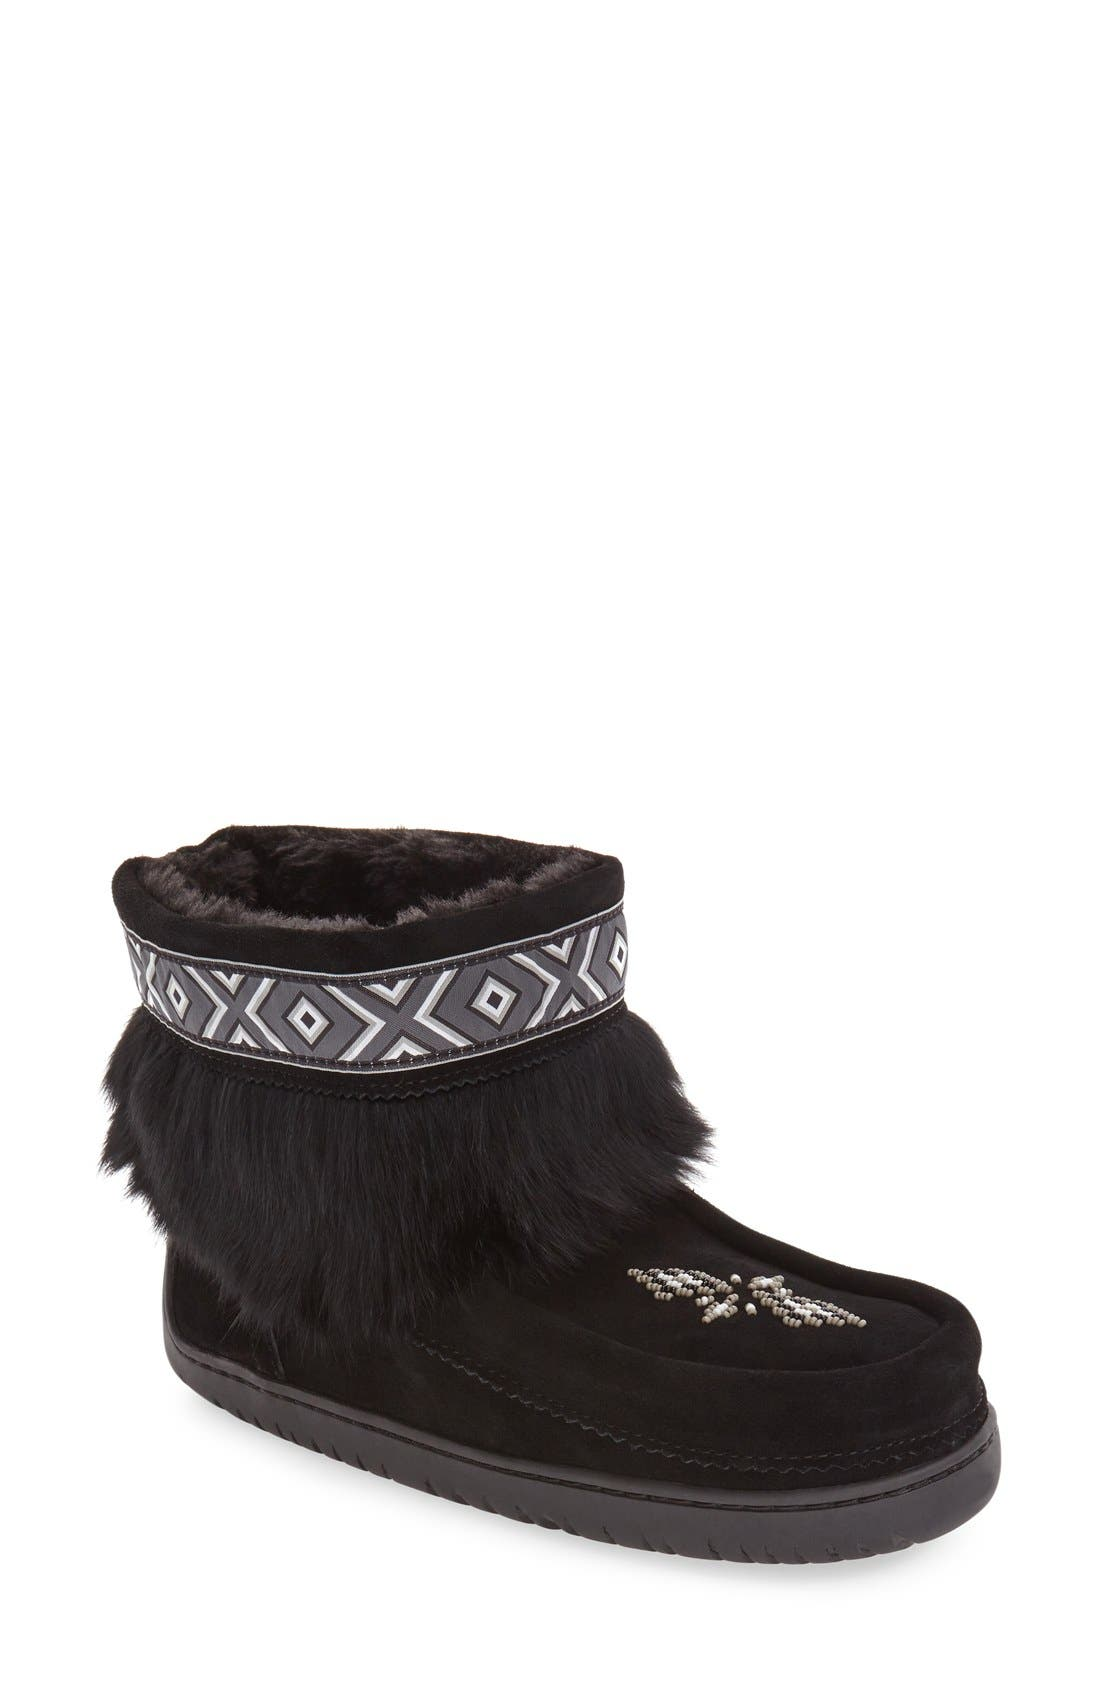 'Keewatin' Genuine Shearling and Rabbit Fur Boot,                         Main,                         color, Black Rabbit Fur Suede